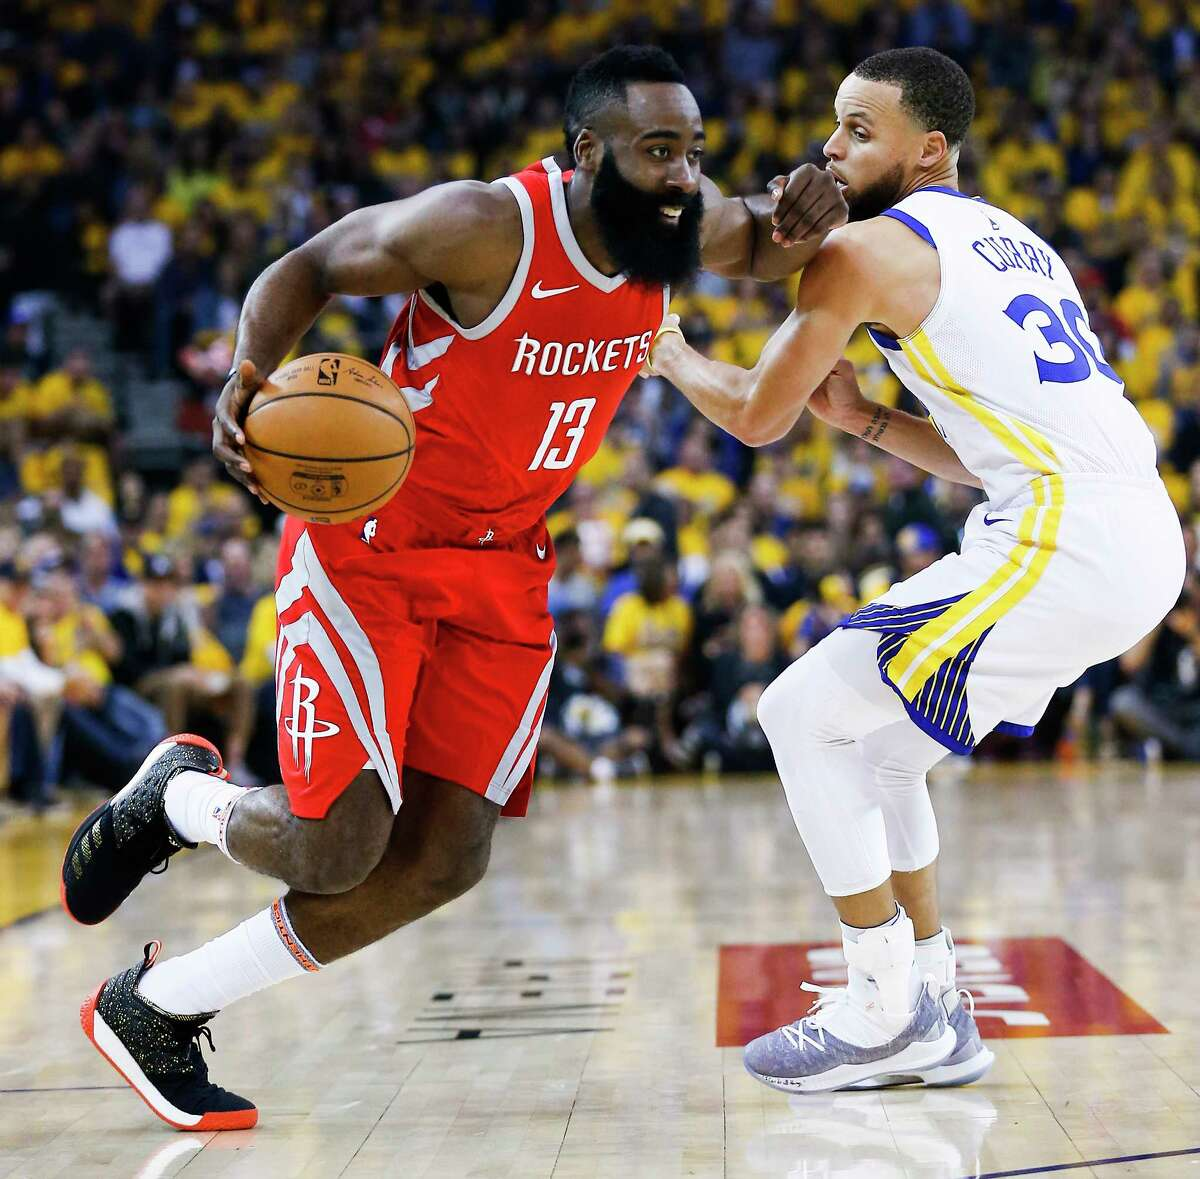 Houston Rockets guard James Harden (13) drives past Golden State Warriors guard Stephen Curry (30) during the first half of Game 3 of the Western Conference Finals at Oracle Arena Sunday, May 20, 2018 in Oakland.